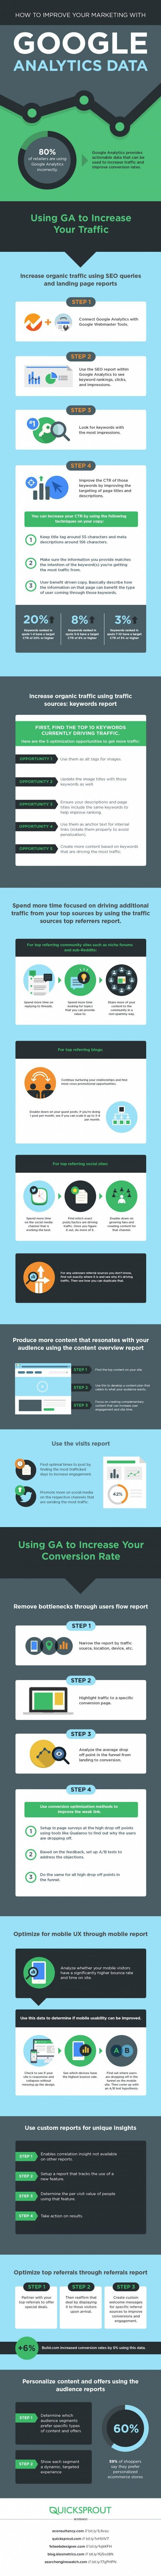 @nielpatel created a step by step guide on Using Google Analytics to improve your Digital Marketing [Infographic] Latest News & Trends in digital marketing 2015